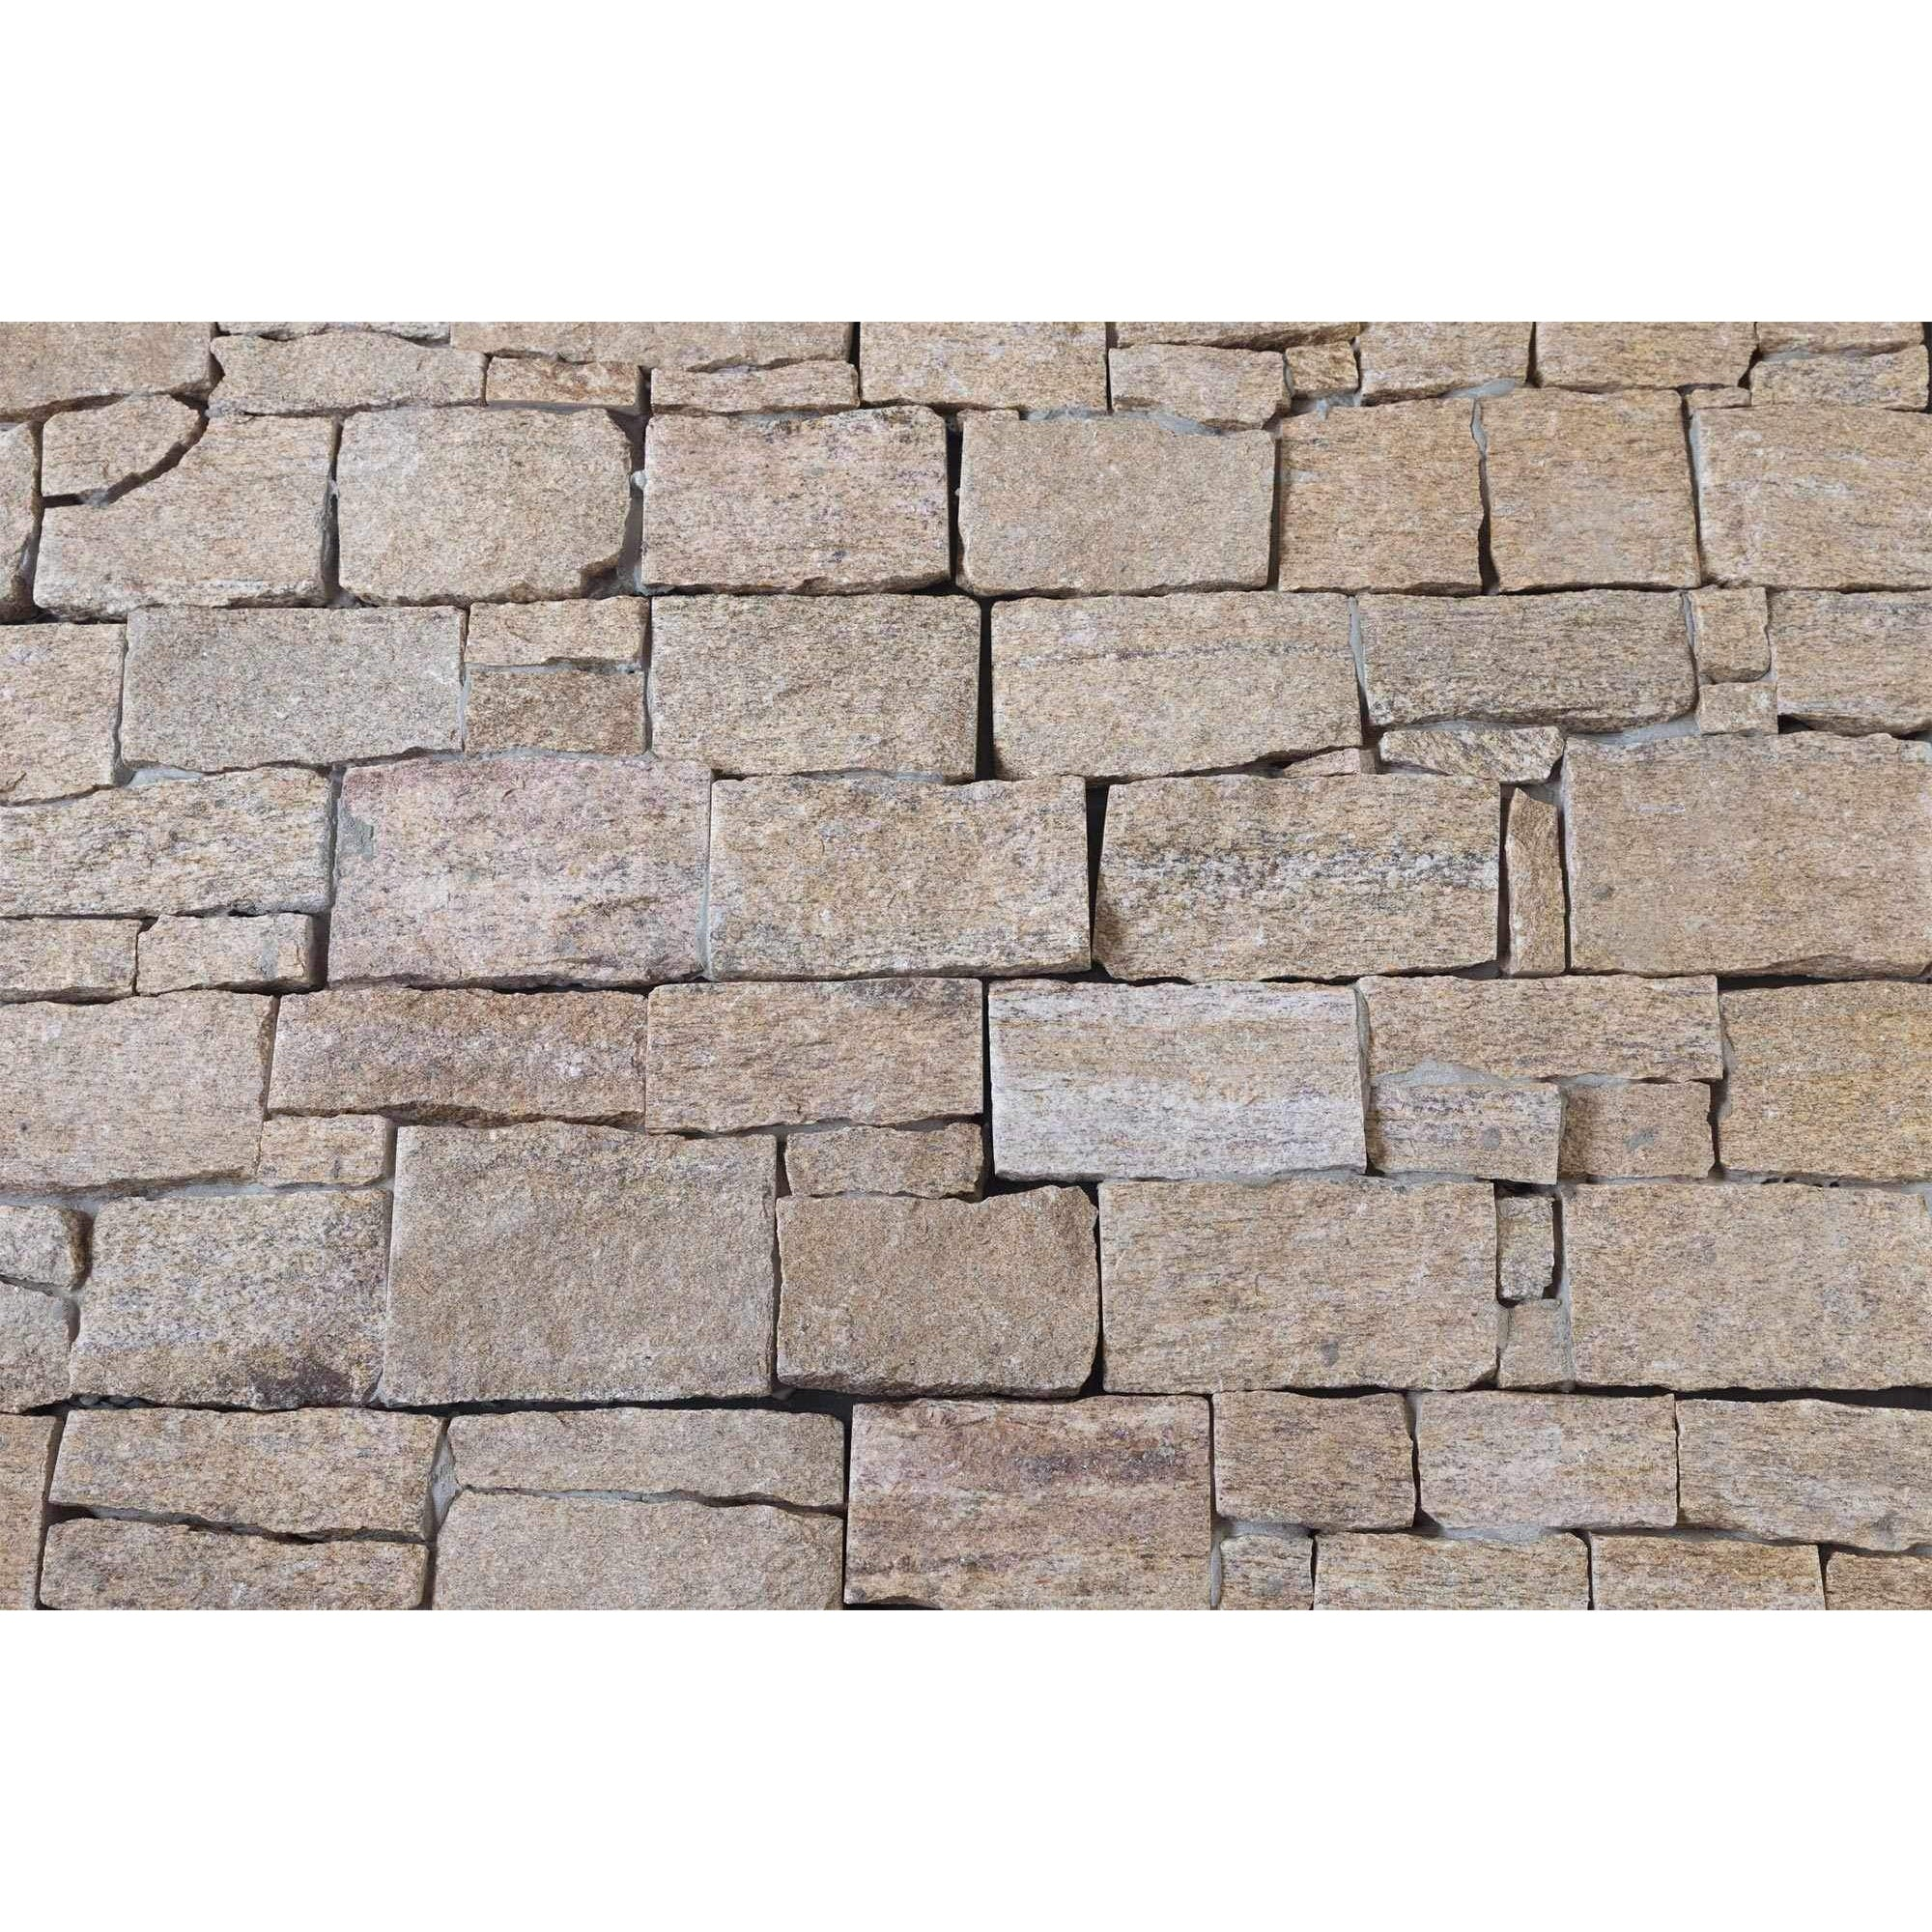 Natural Ledgestone Feature Wall Cladding Panels - Tiger Skin